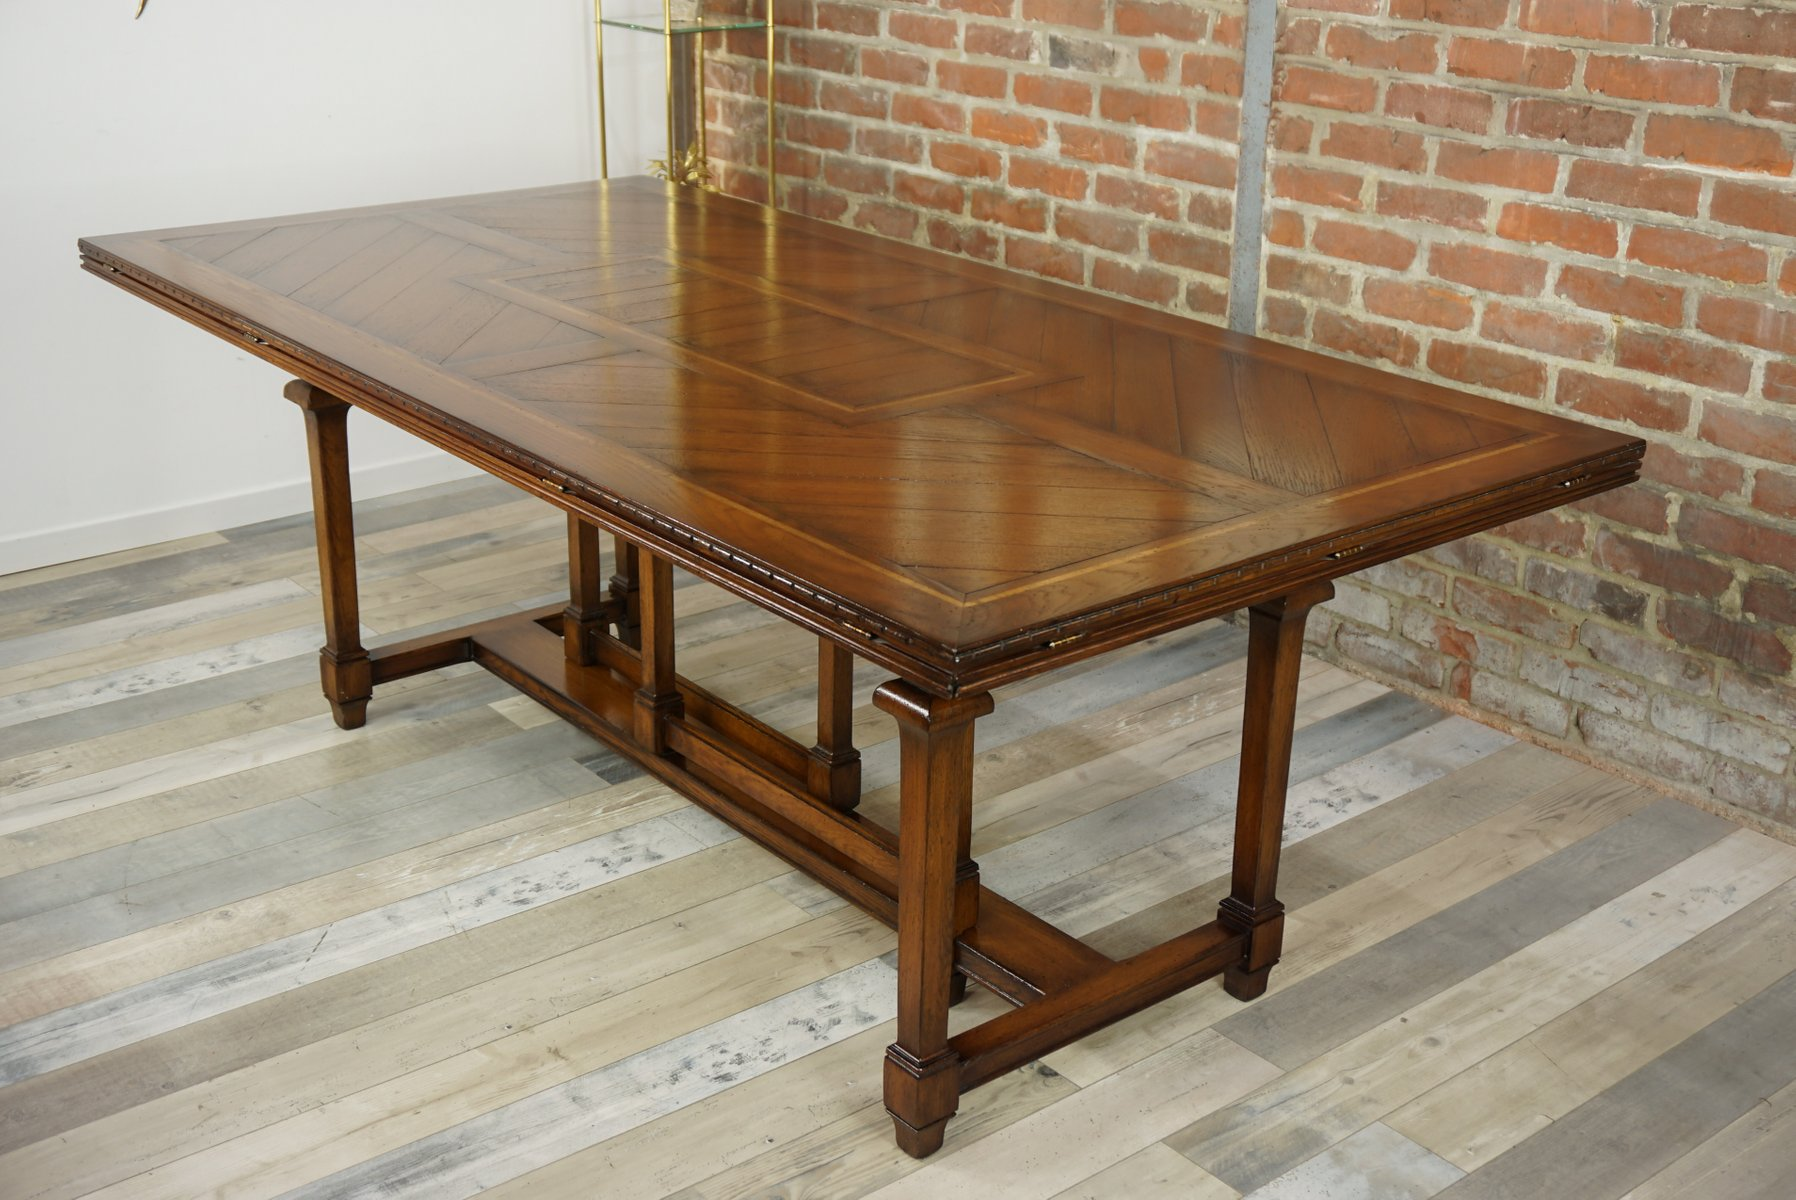 vintage wooden marquetry modular dining table - Modular Dining Room